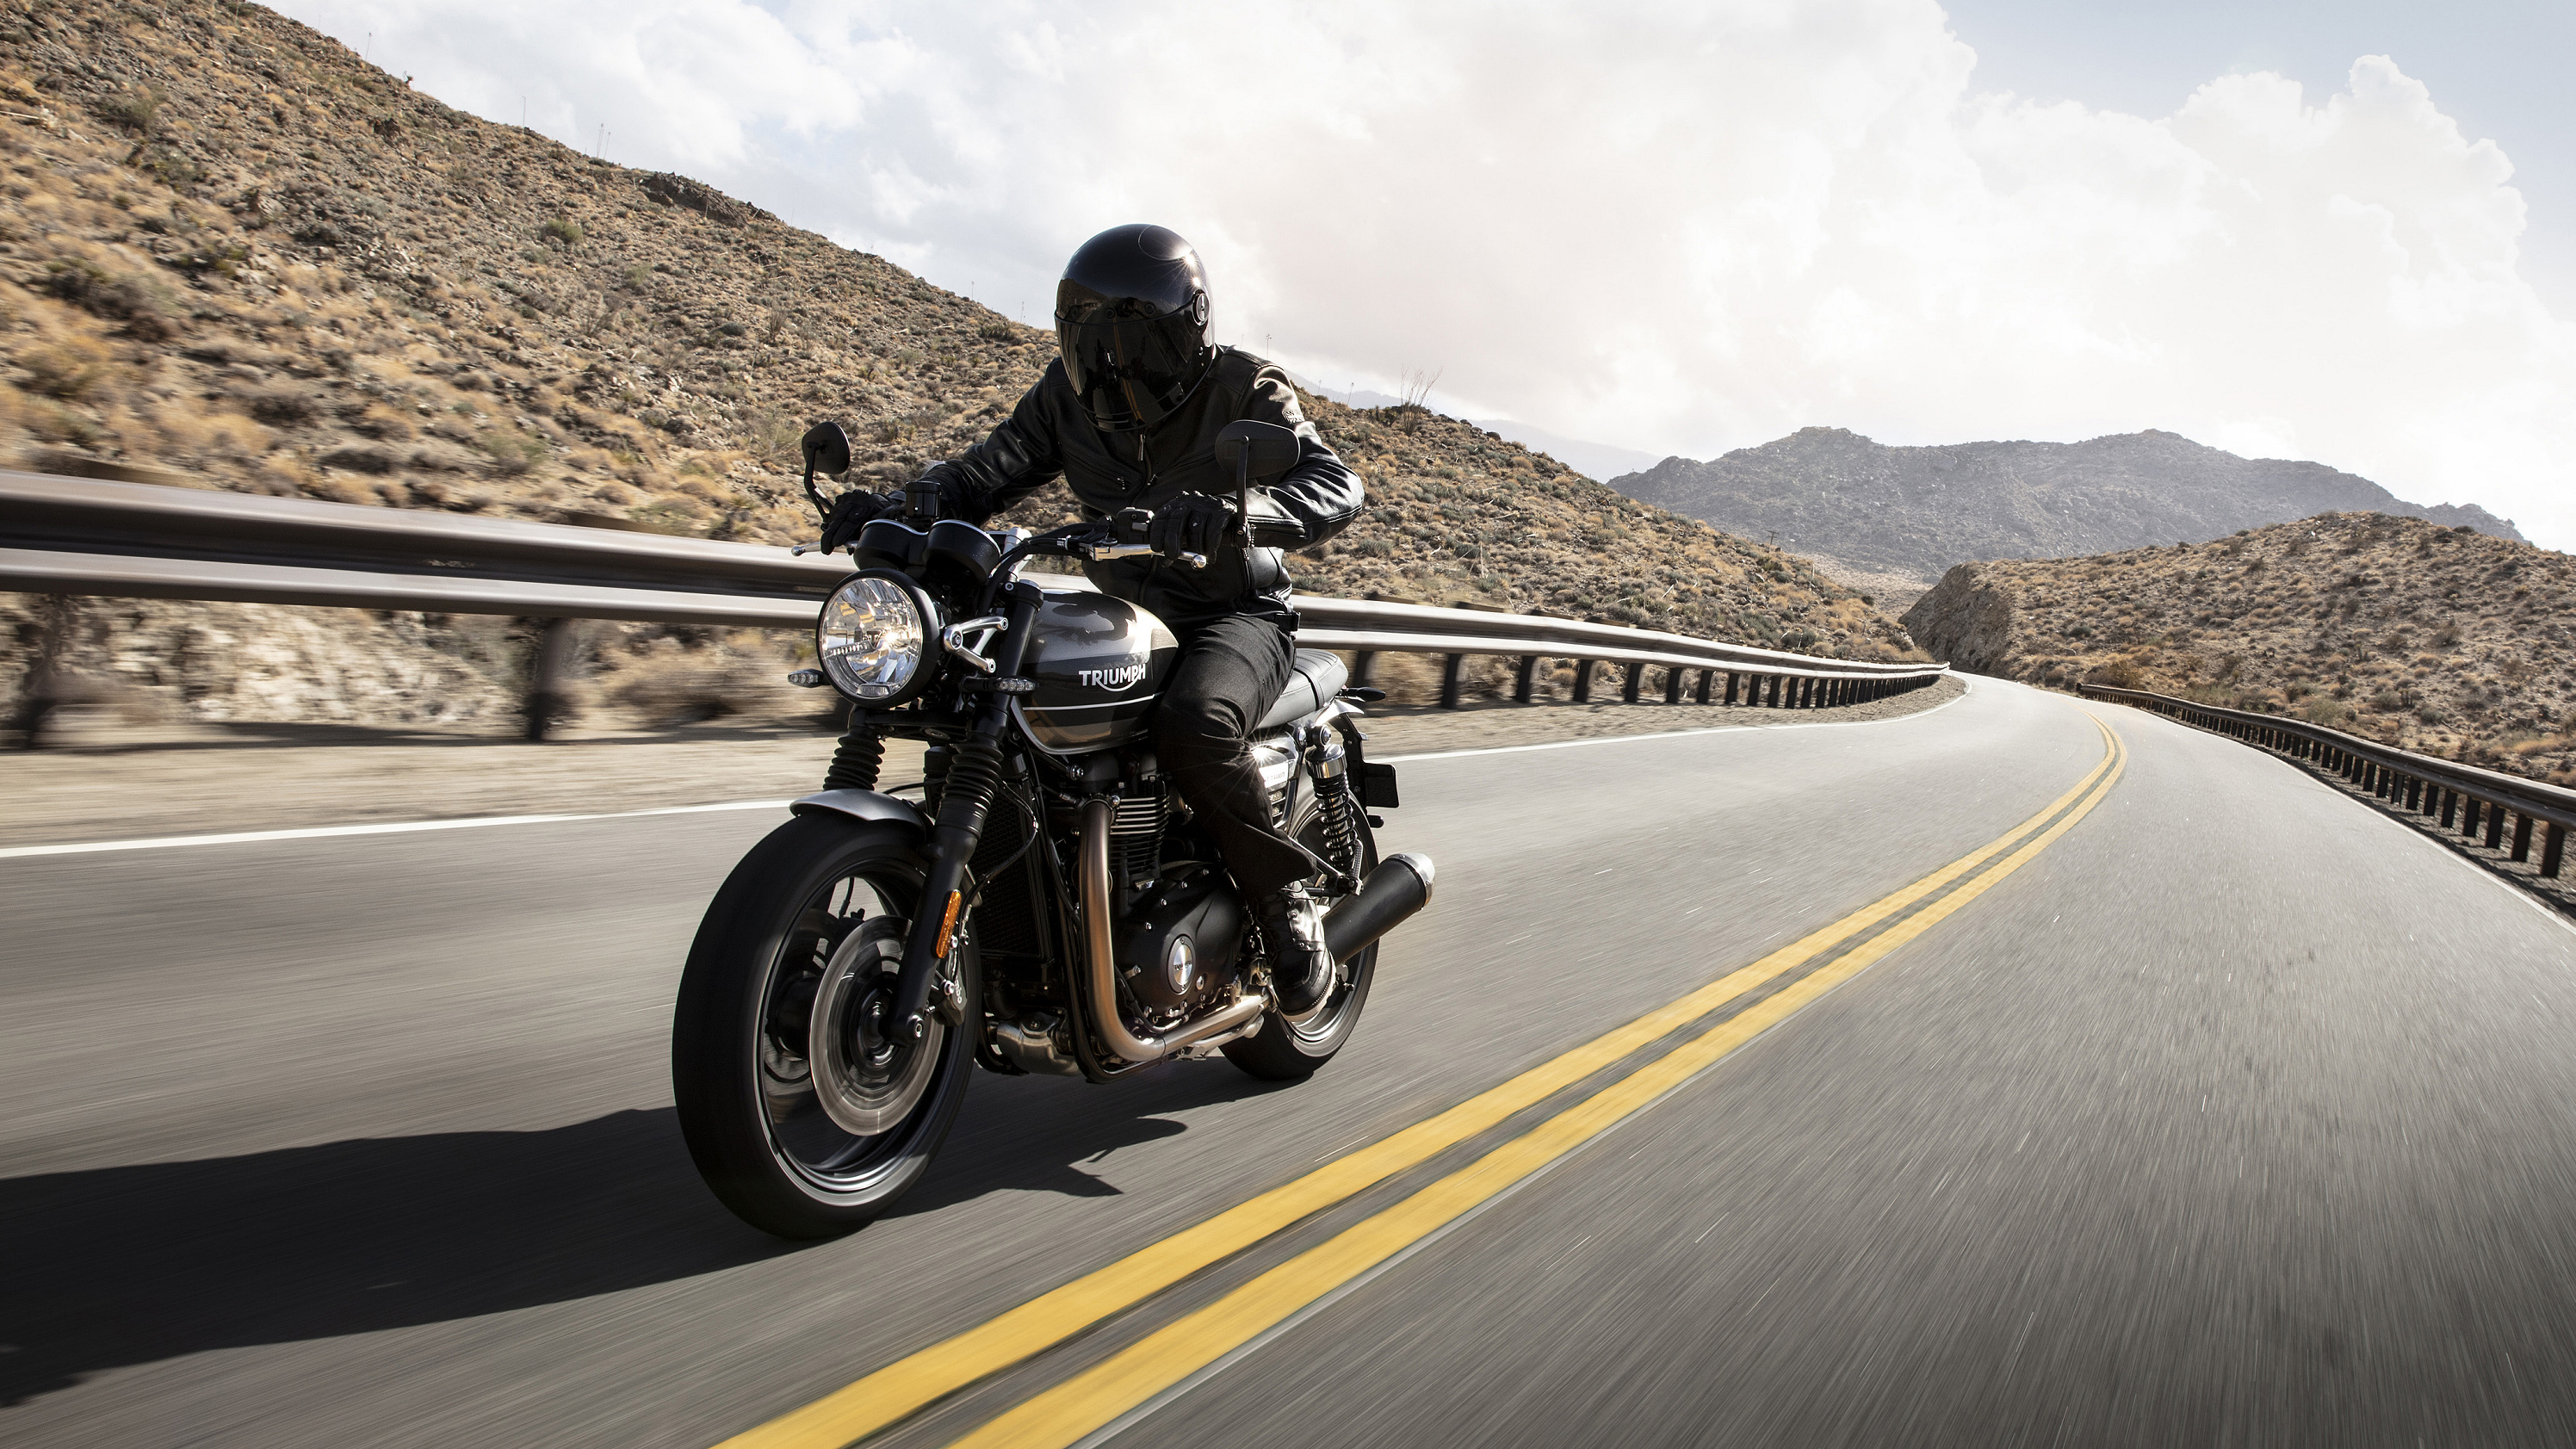 2019 Triumph Speed Twin Pictures, Photos, Wallpapers